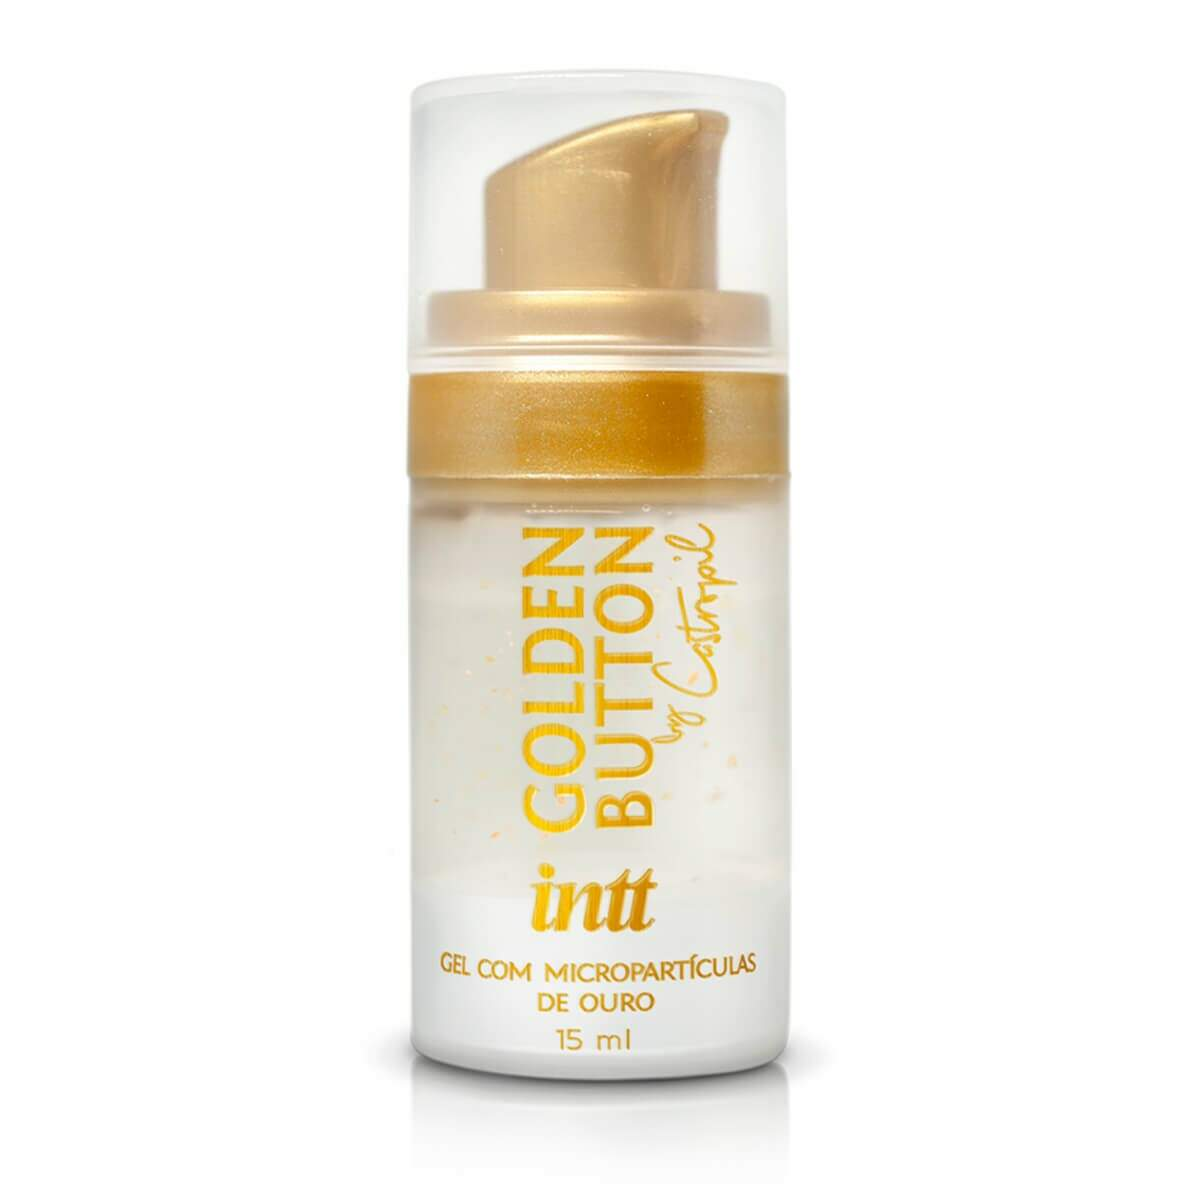 Gel Facilitador Anal com Micropartículas de Ouro 23k Golden Botton By Castropil - Intt